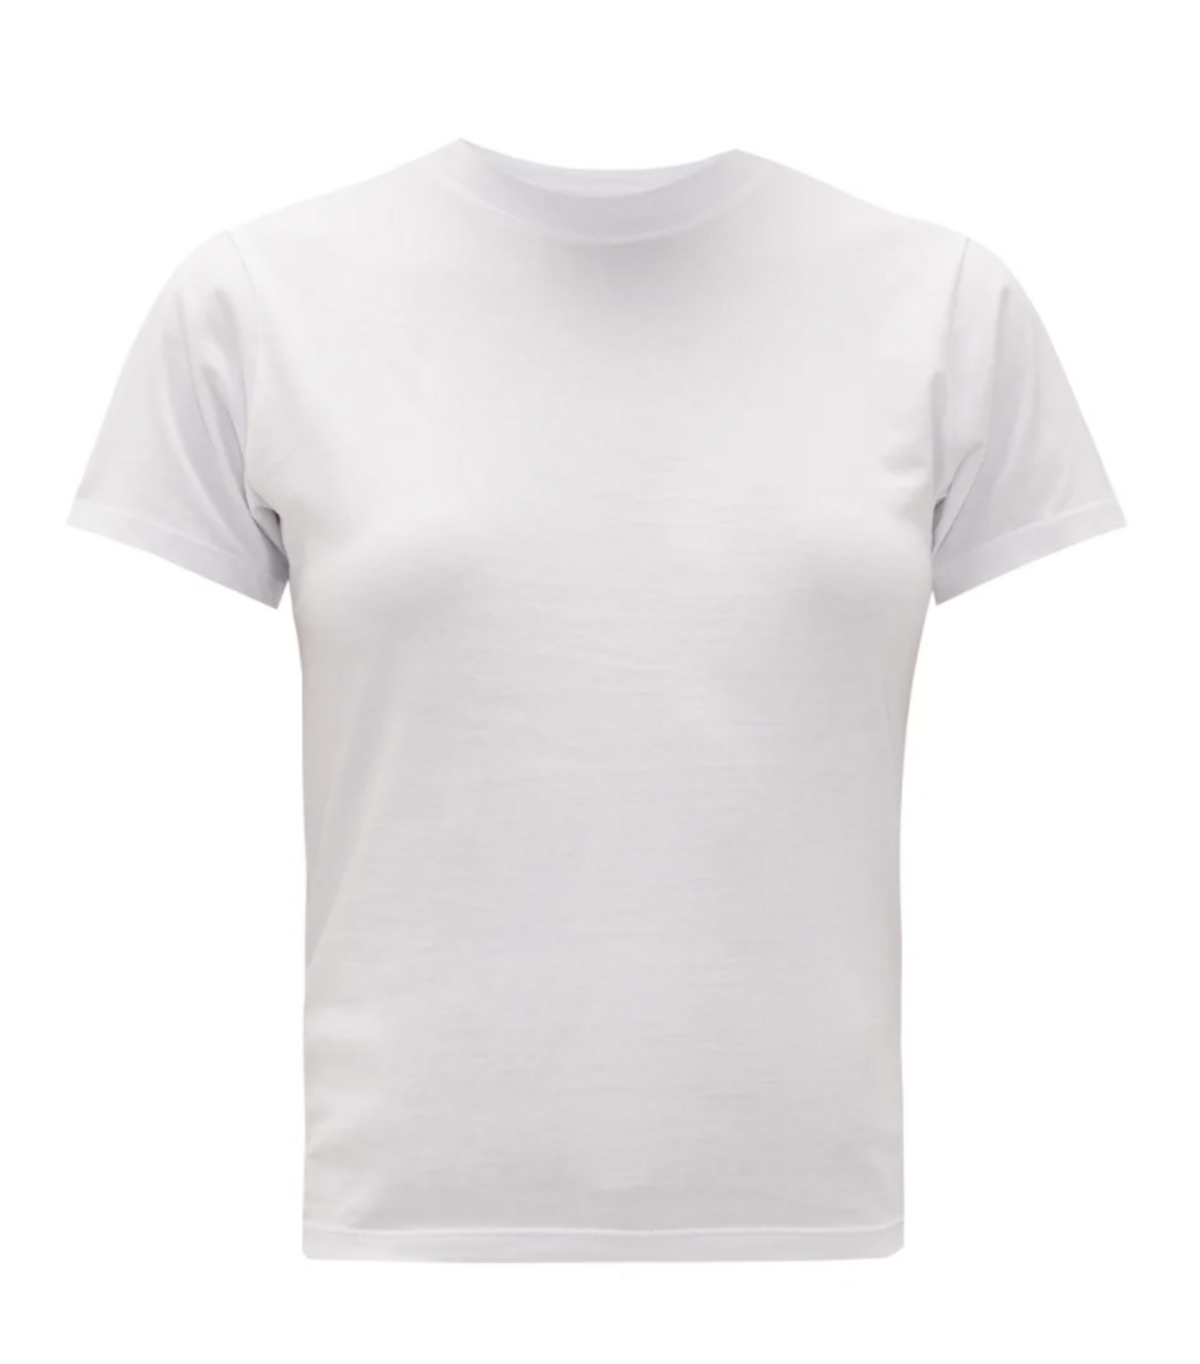 The Crew Cotton Jersey Cropped T-shirt